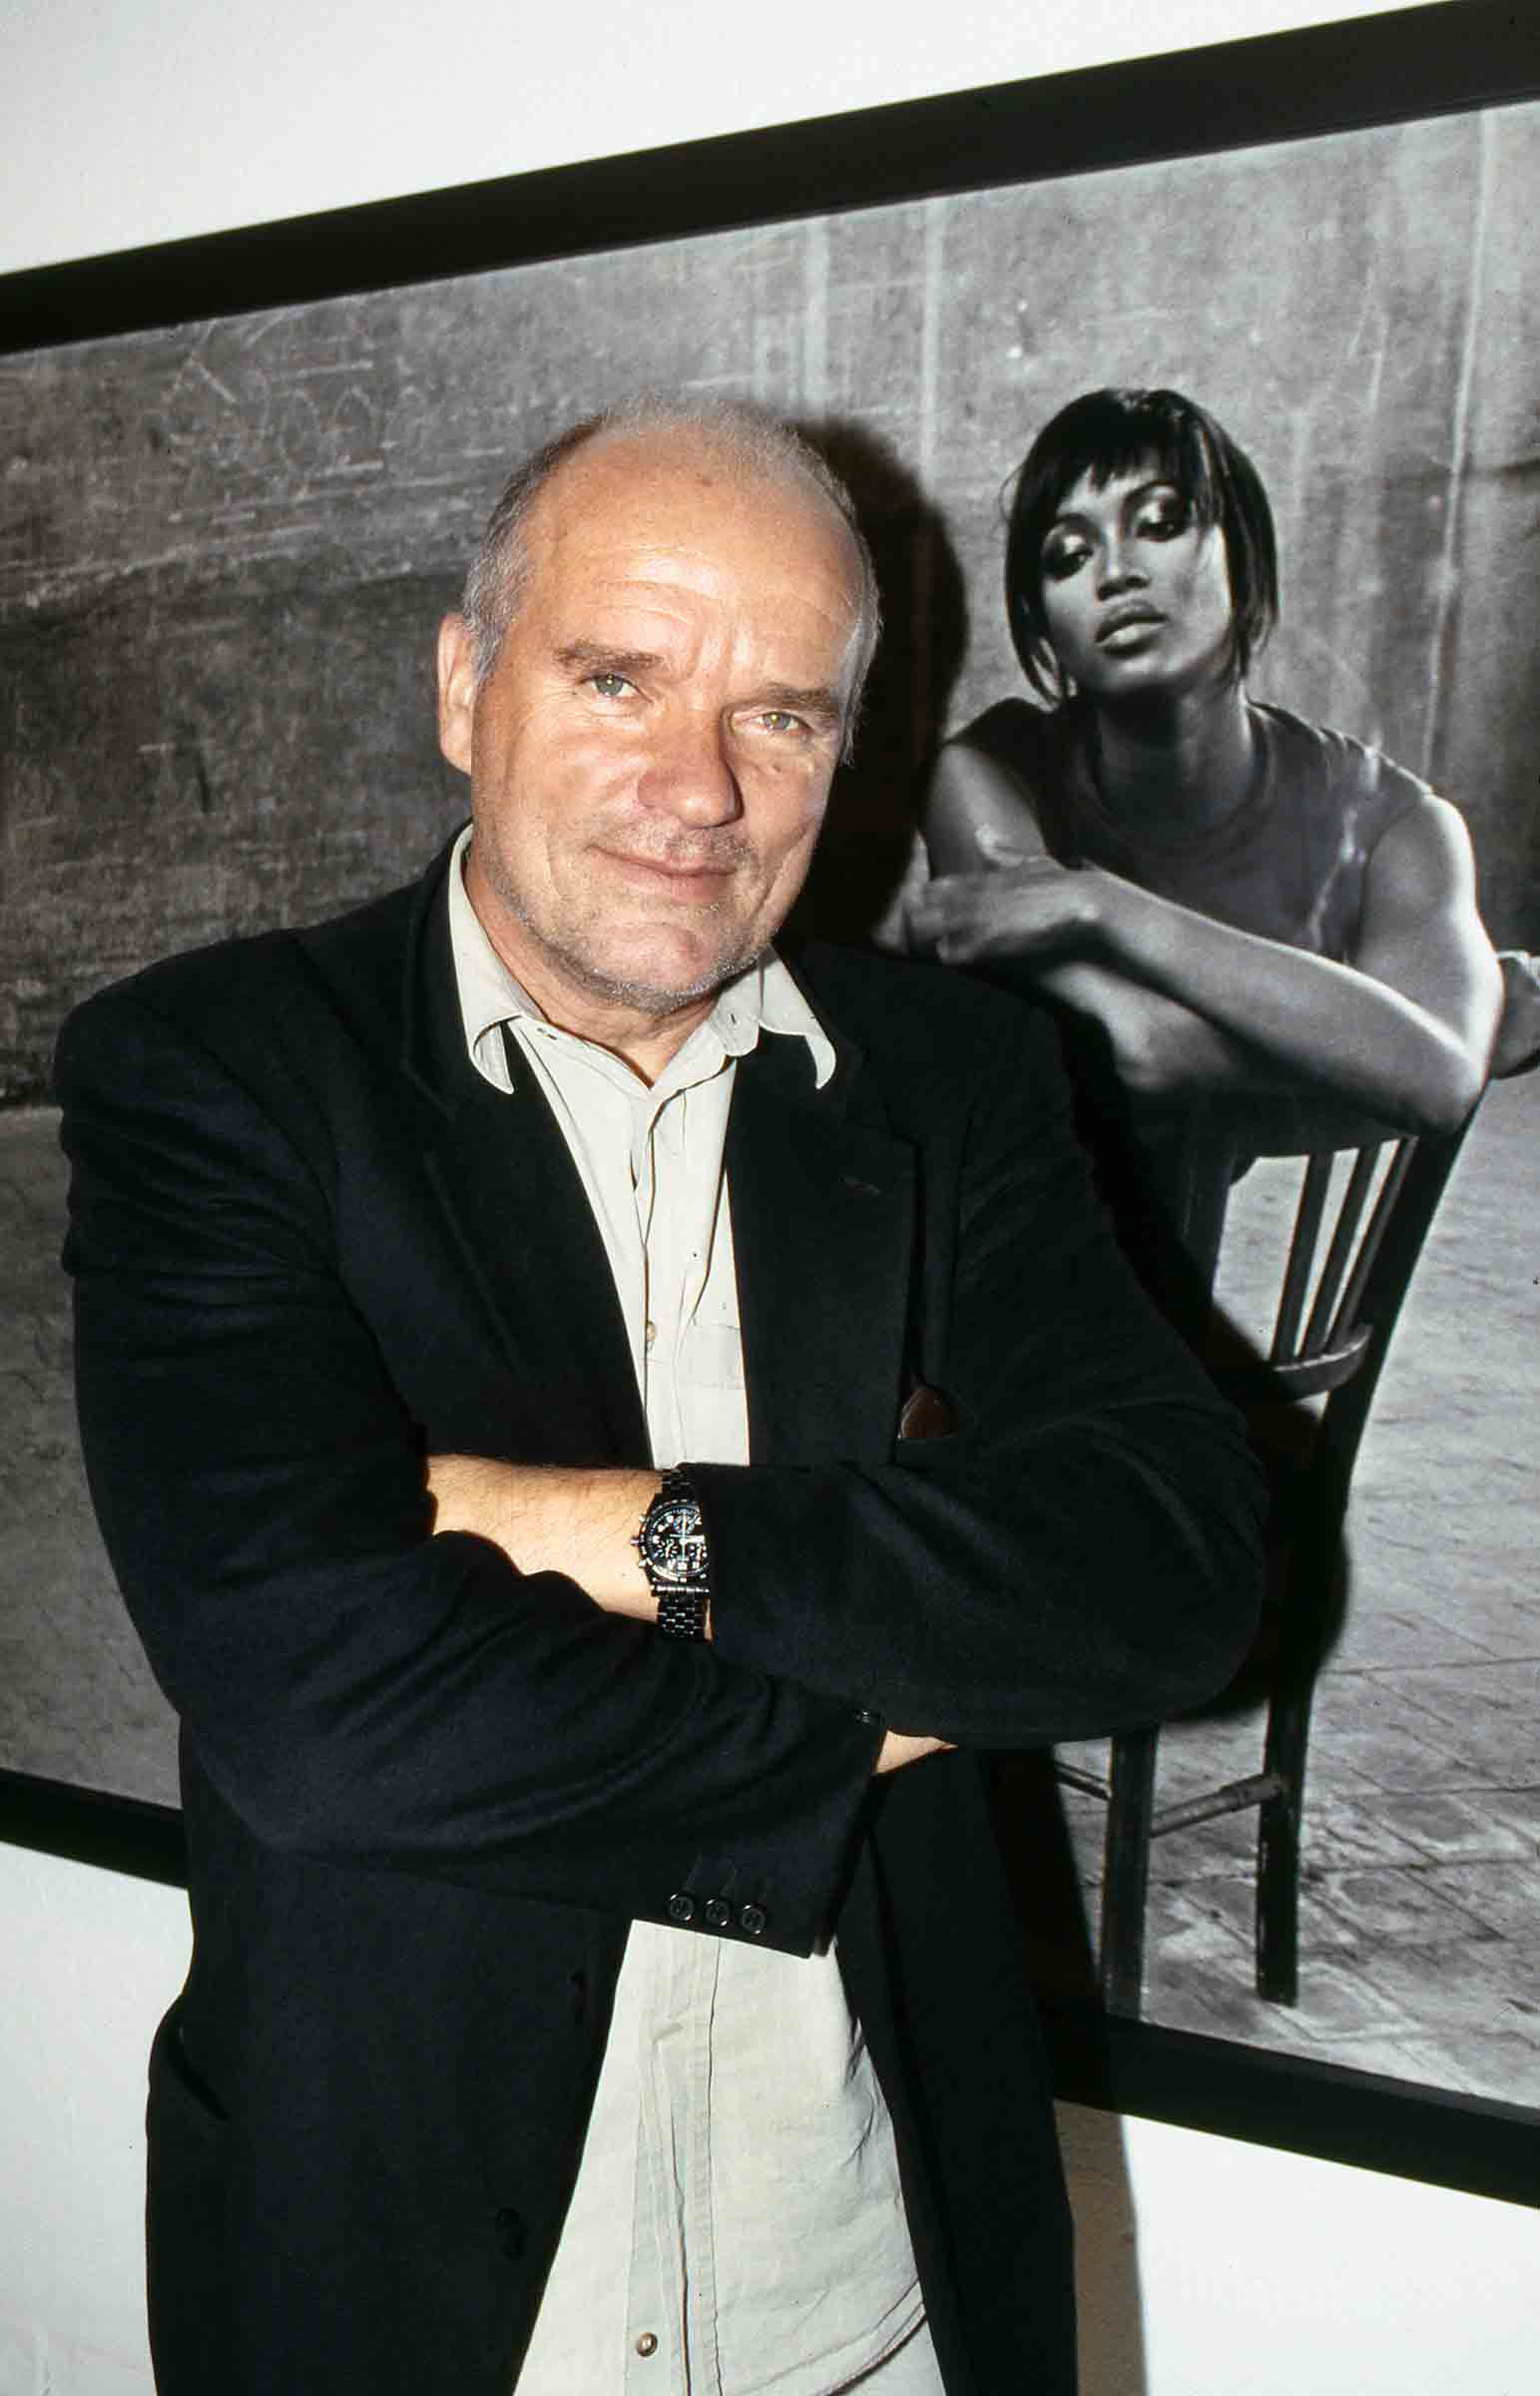 Peter Lindbergh attends his exhibition in Milan in 2000